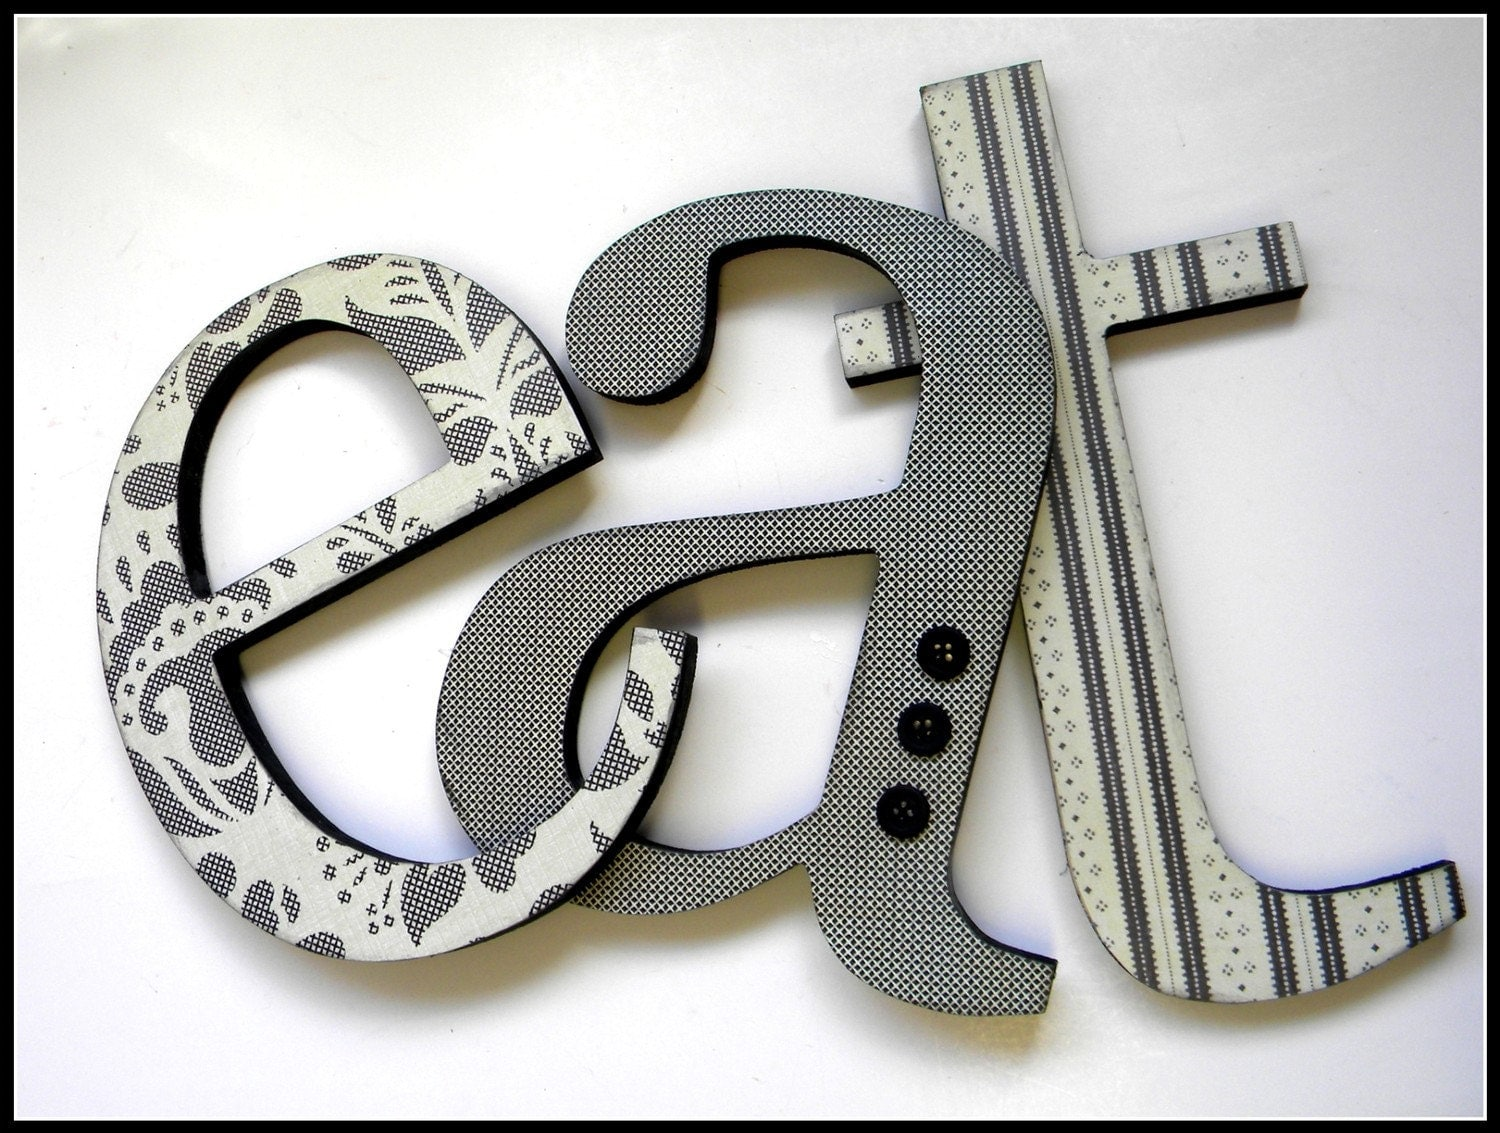 EAT SIGN Wooden Letters EAT Kitchen Decor 8-10 Inches